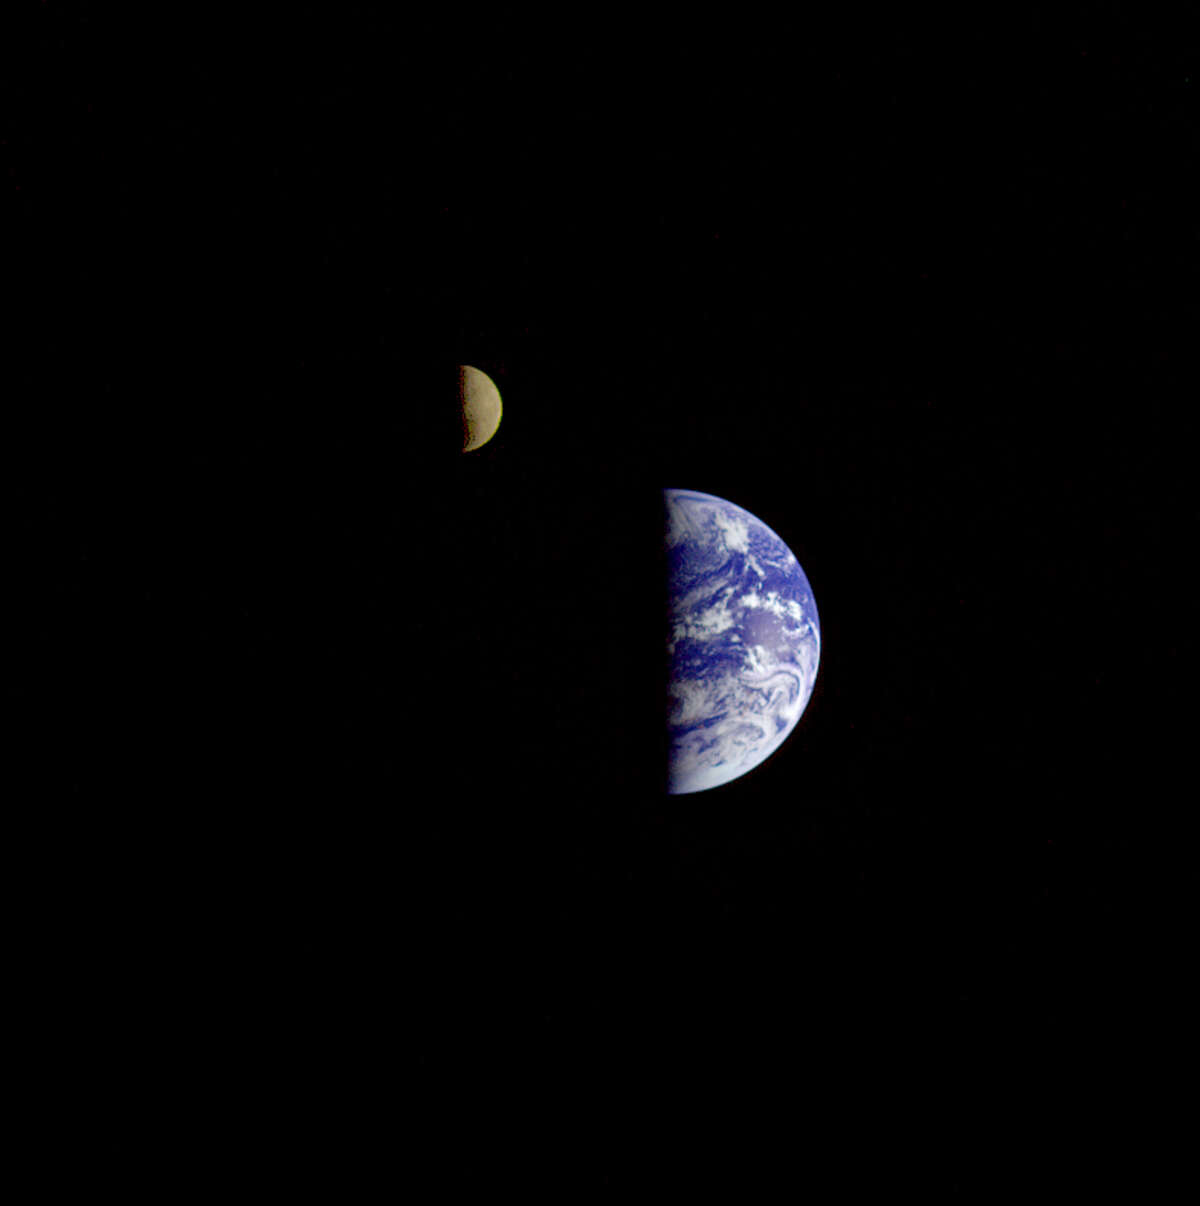 Eight days after its final encounter with the Earth, the Galileo spacecraft looked back and captured this remarkable view of the Earth and Moon. The image was taken from a distance of about 6.2 million km (3.9 million miles). The picture was made with images taken through the violet, red, and 1.0-micron infrared filters. The Moon is in the foreground, moving from left to right. The brightly-colored Earth contrasts strongly with the Moon, which reflects only about one-third as much sunlight as the Earth. Contrast and color have been computer-enhanced for both objects to improve visibility. Antarctica is visible through clouds (bottom). The Moon's far side is seen; the shadowy indentation in the dawn terminator is the south pole Aitken Basin, one of the largest and oldest lunar impact features.